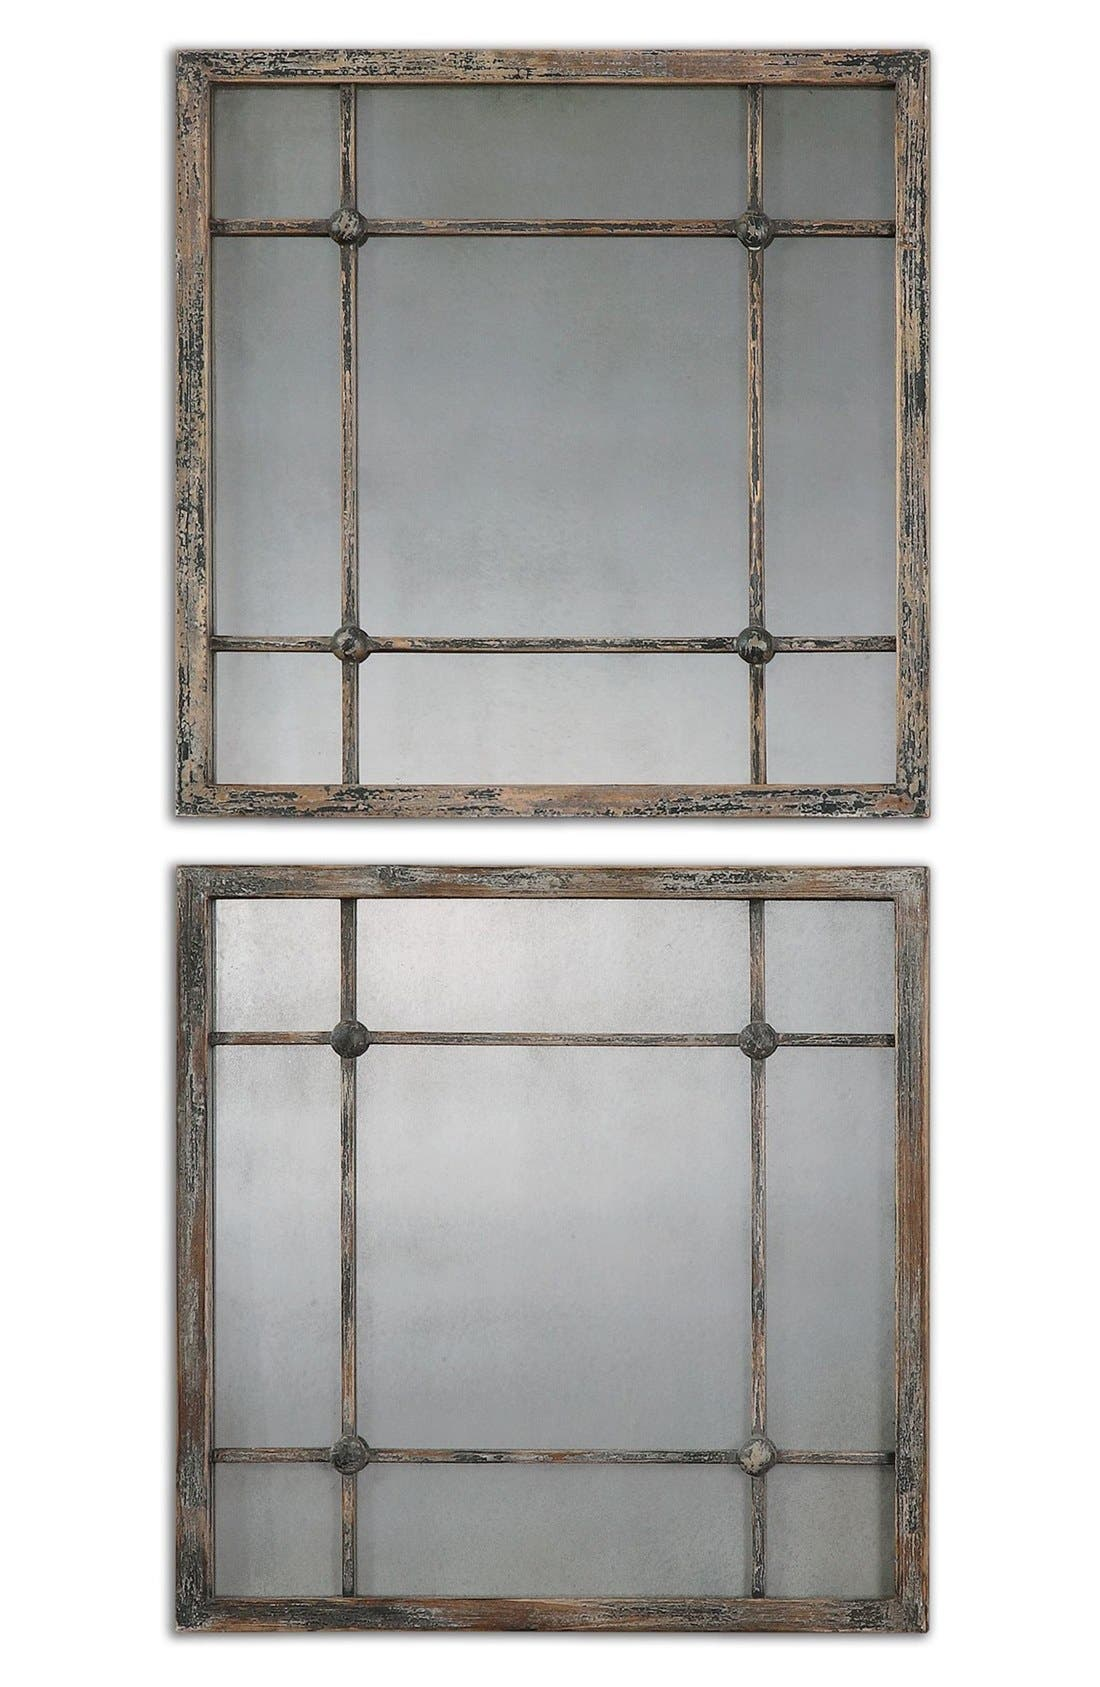 Alternate Image 1 Selected - Uttermost 'Saragano' Square Mirror (Set of 2)